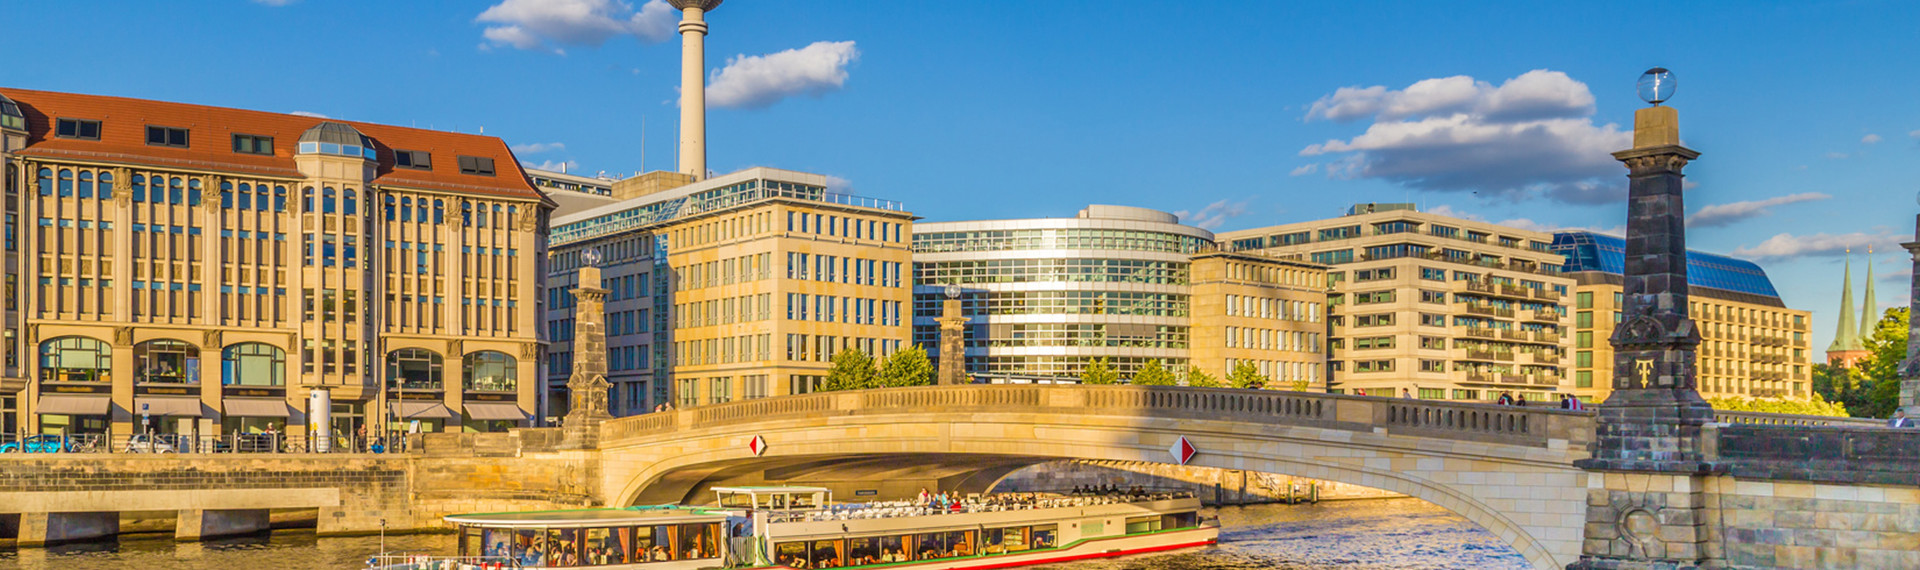 Boat Sightseeing Tour Berlin